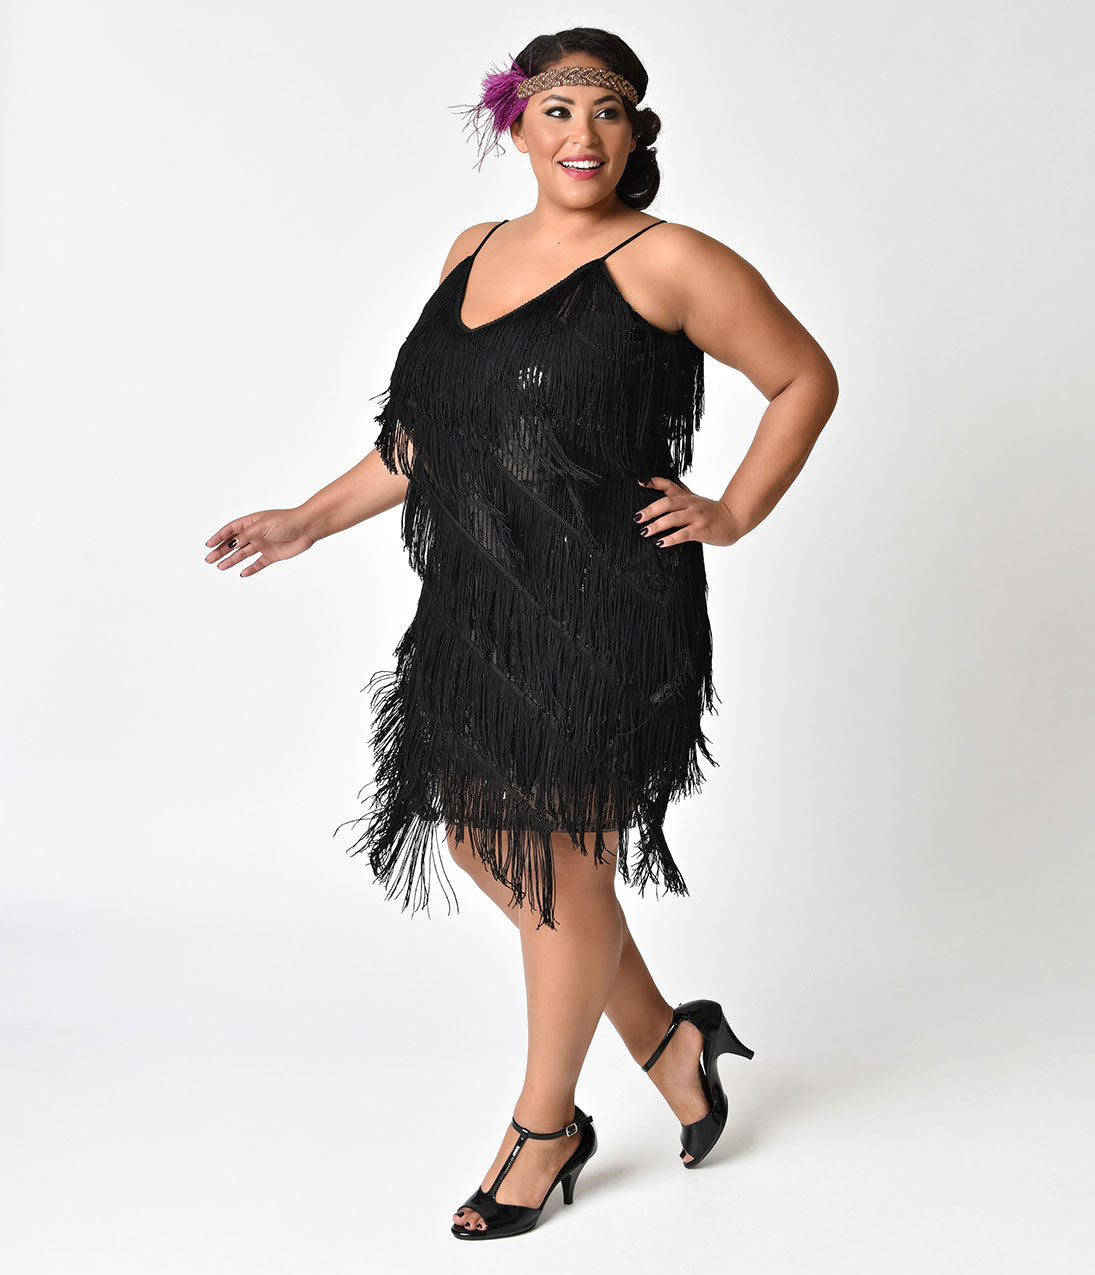 Gangster Costumes & Outfits | Women's and Men's Unique Vintage Plus Size 1920S Style Black Cecile Tiered Fringe Flapper Dress $35.00 AT vintagedancer.com